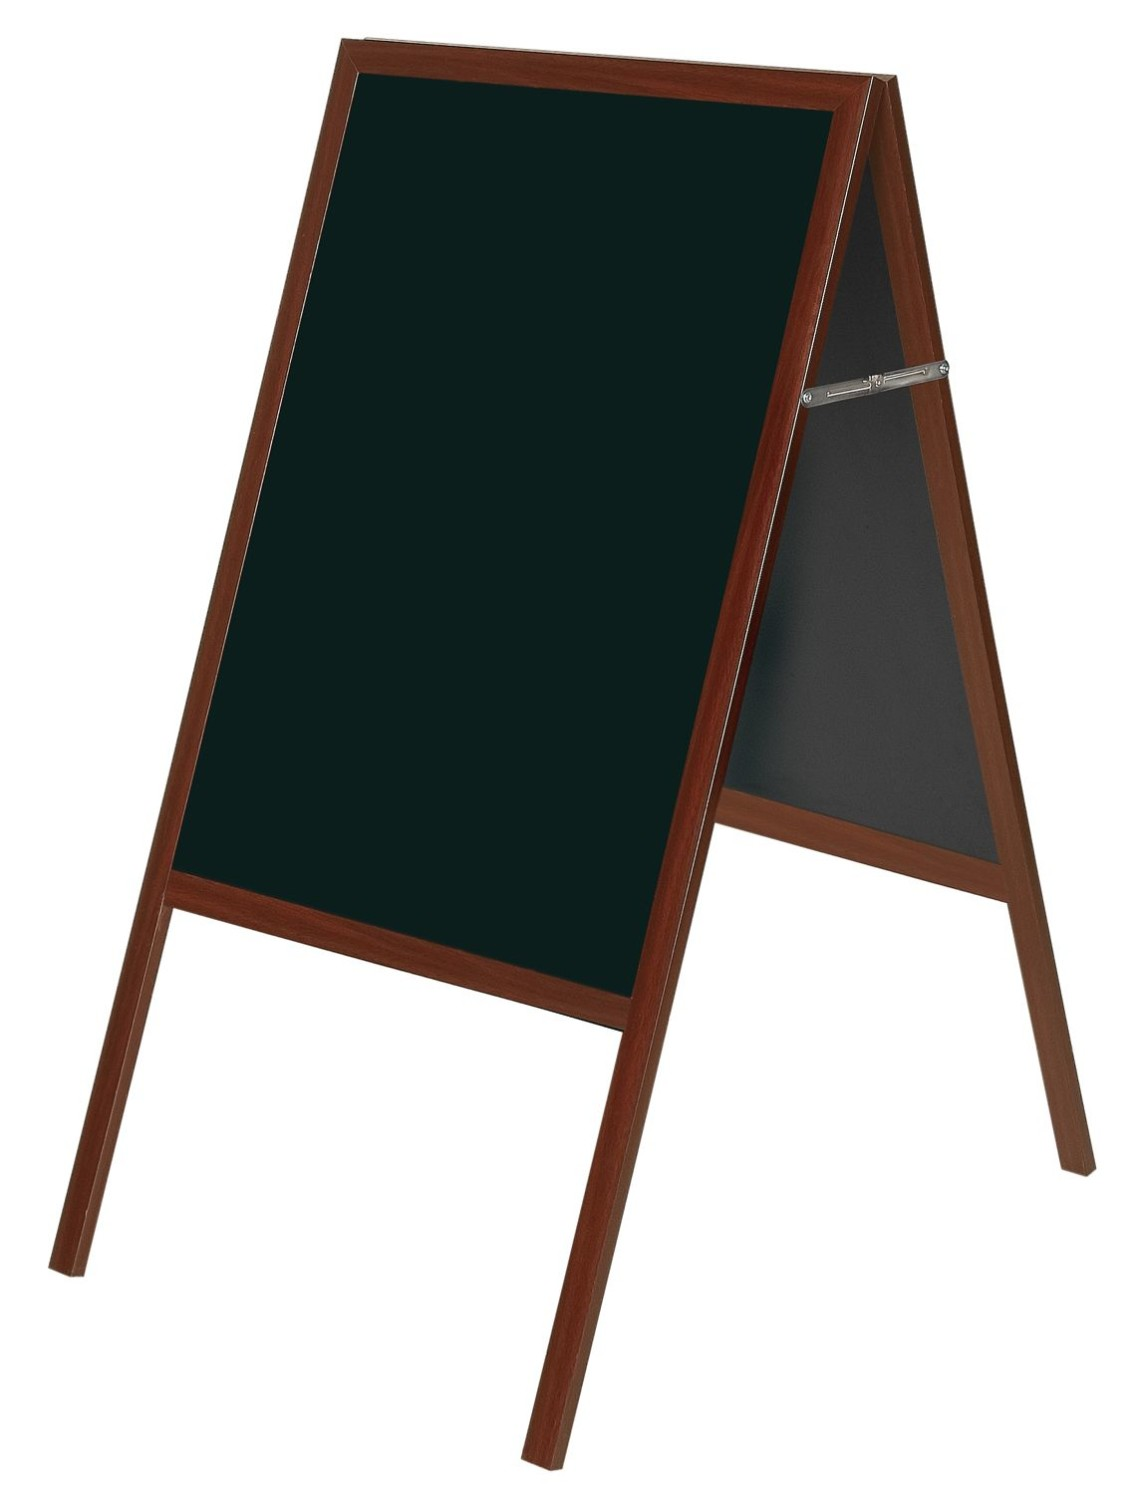 An image of Bio A Frame Chalk Board with a Cherry Wood Frame - Blackboards